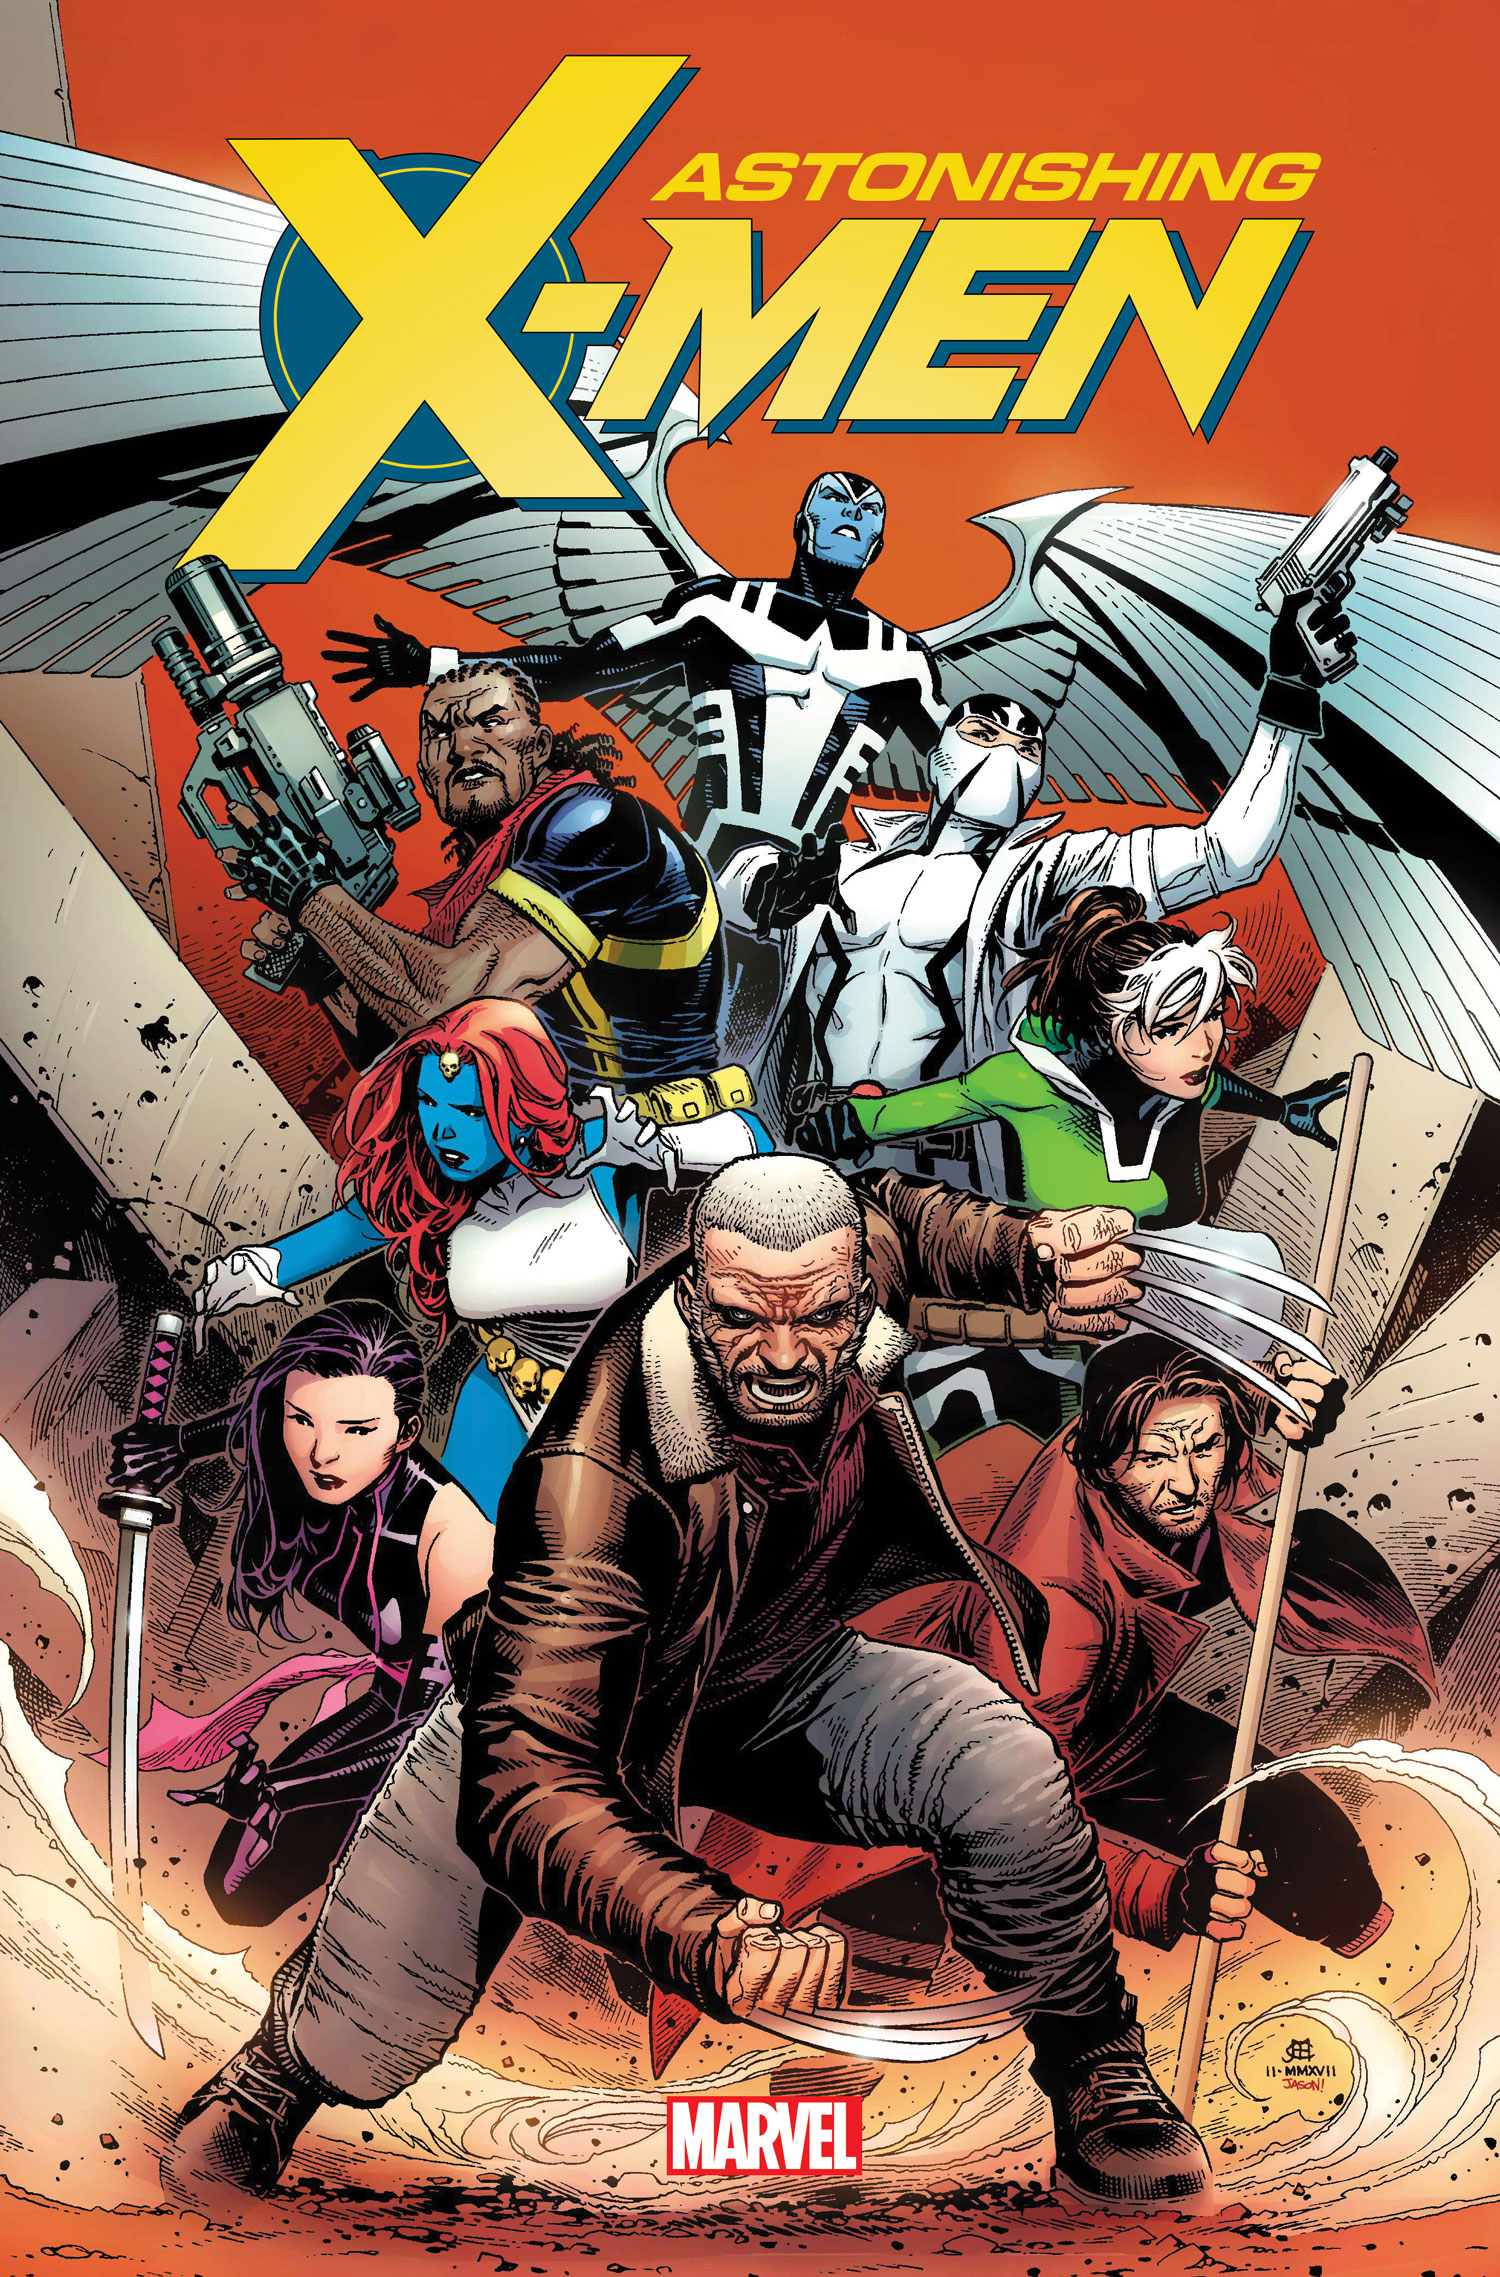 Jim Cheung - Astonishing X-Men #1 cover